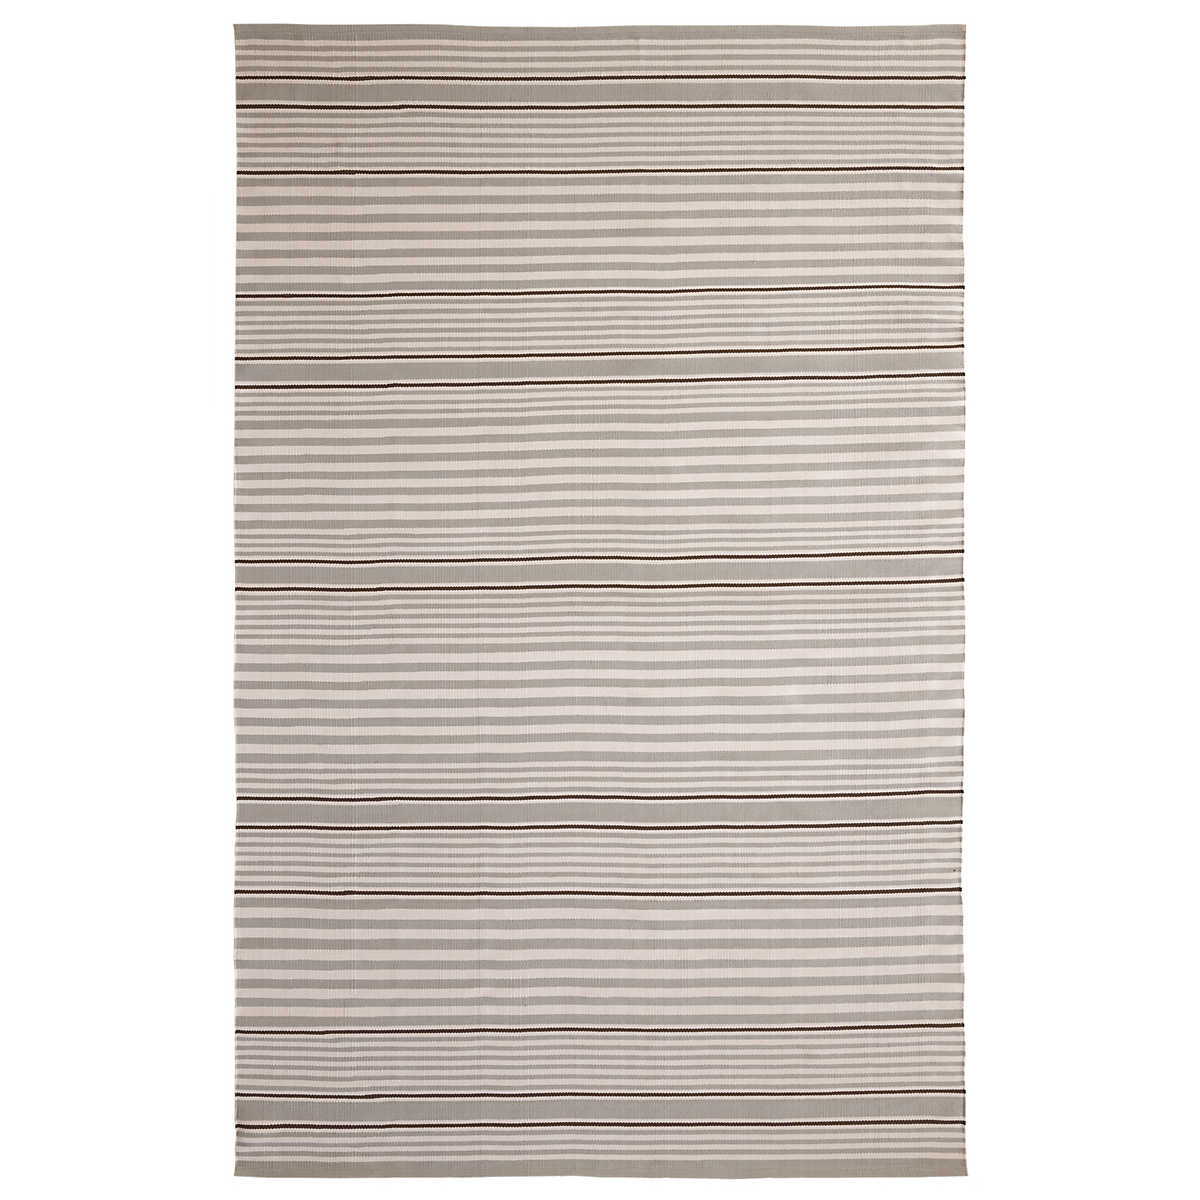 Rugby Stripe Platinum Indoor/Outdoor Rug | Dash & Albert